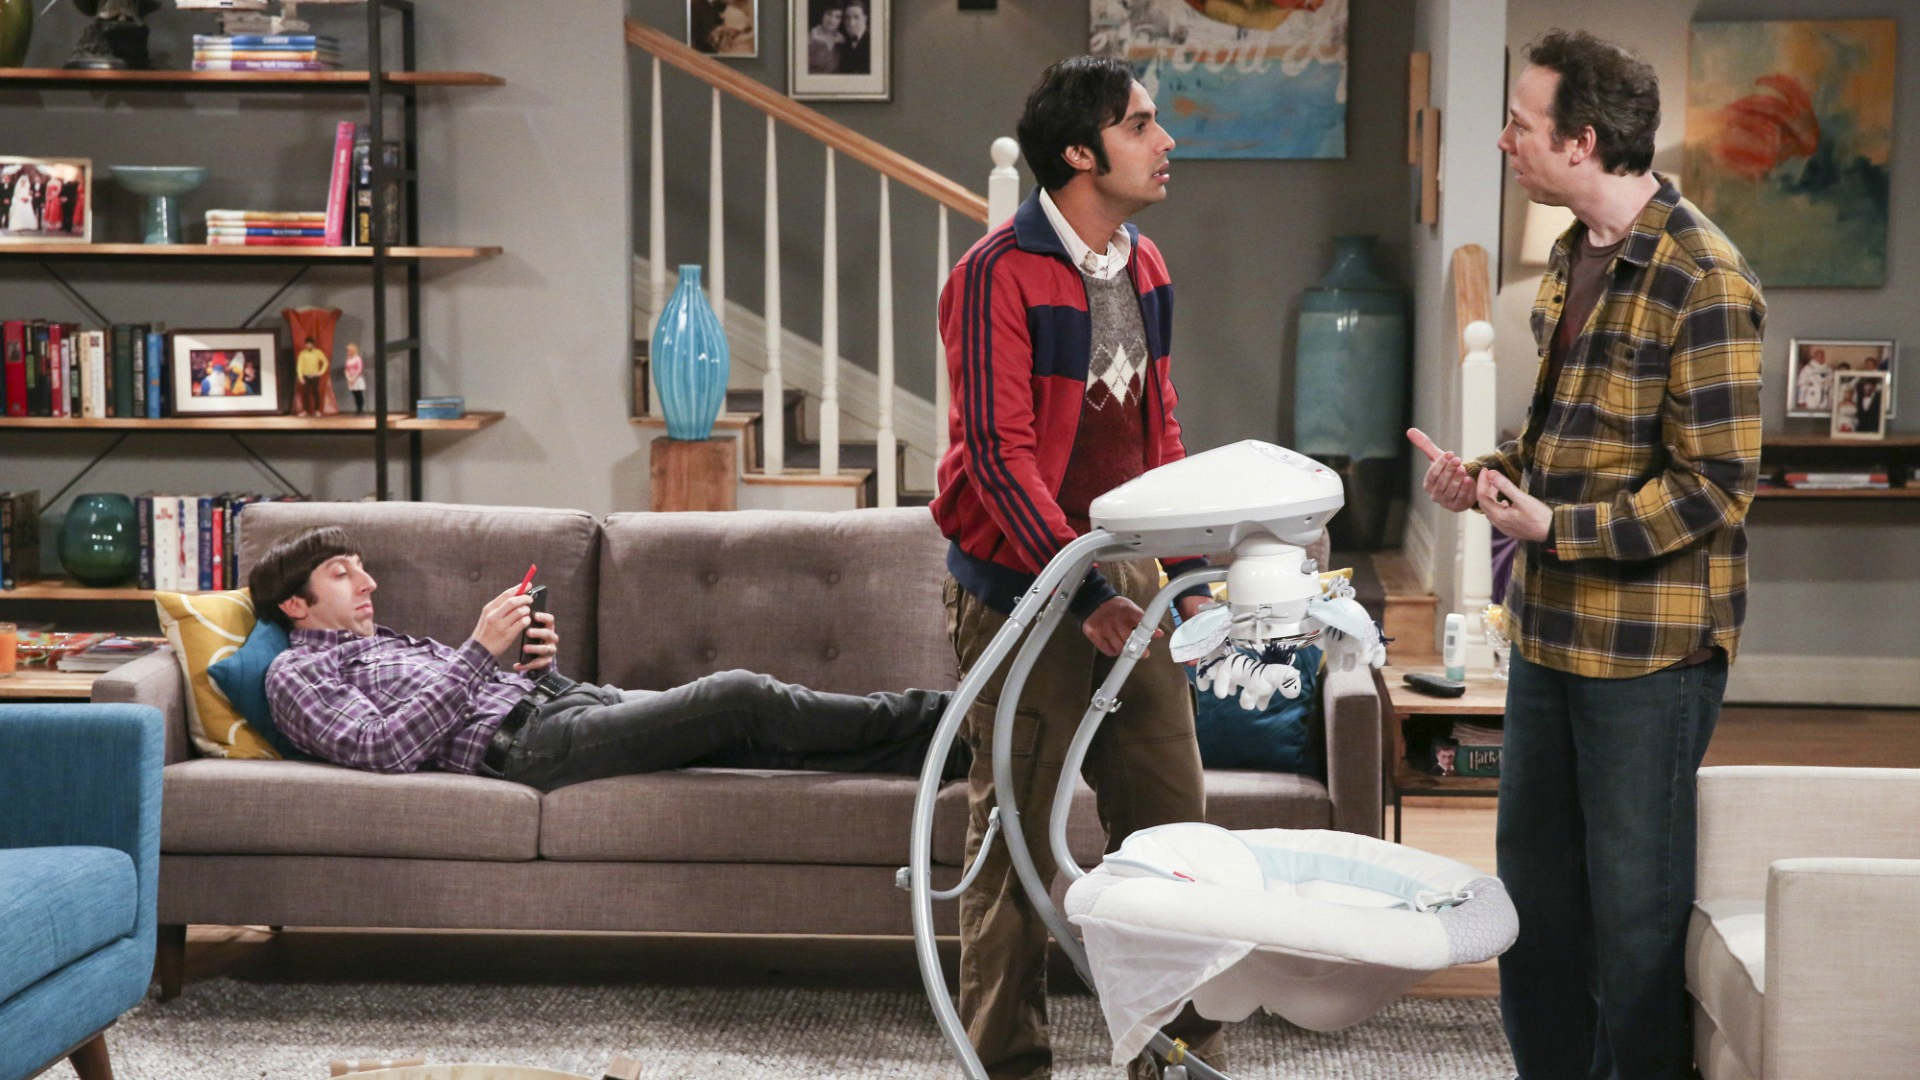 Howard kicks back as Raj and Stuart argue over baby-related responsibilities.